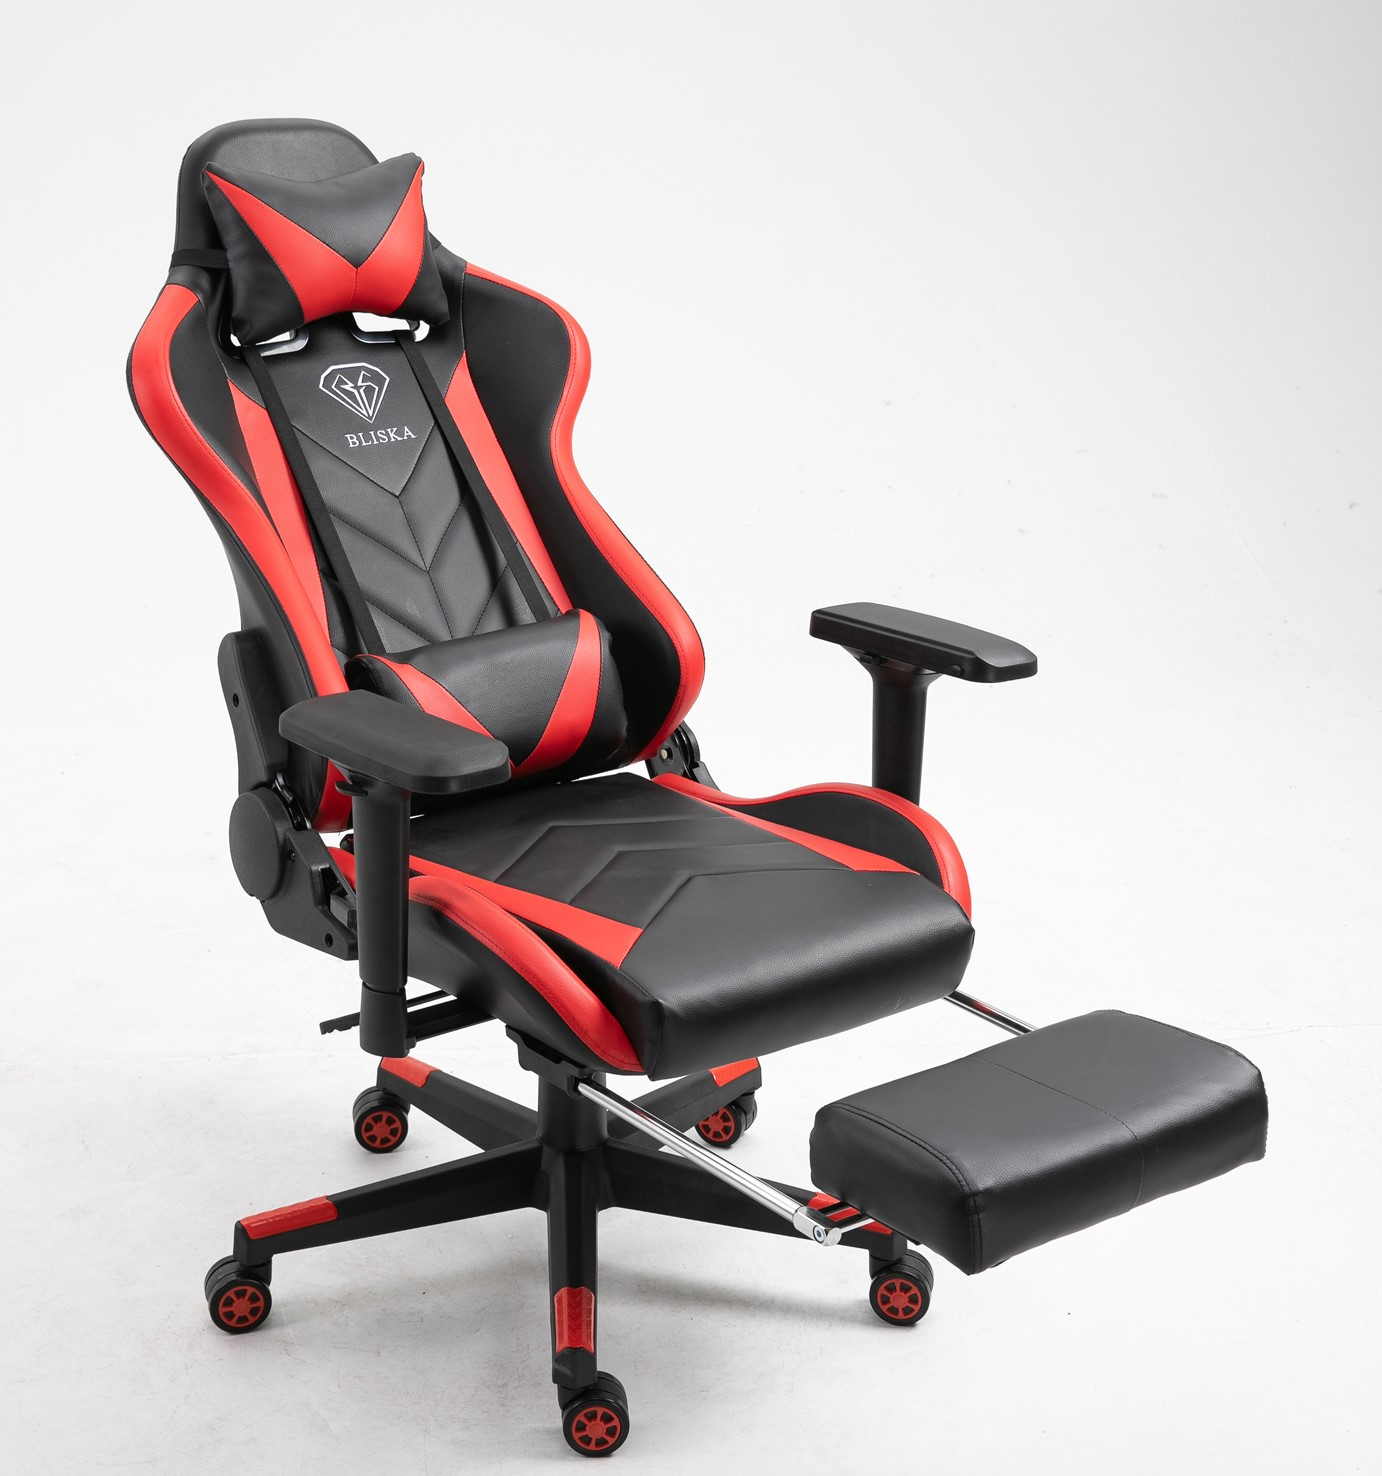 Best Seller PU Leather Gaming Racing Chair Reclining Laying down Chair with Footrest Nice Prices